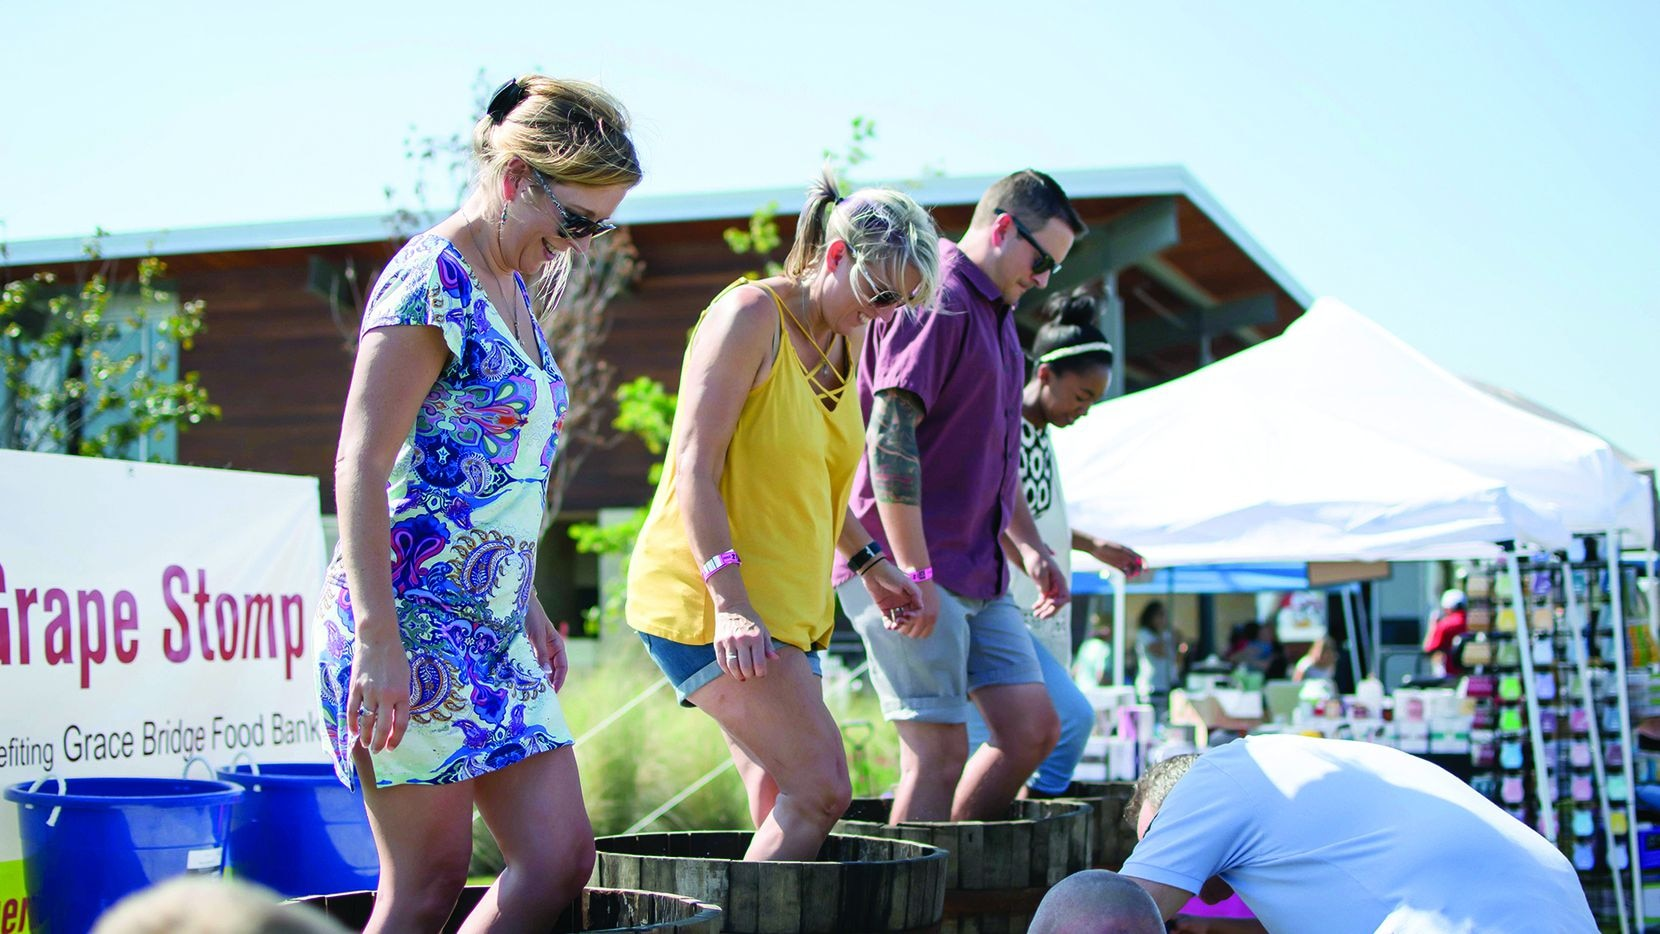 The 6th annual Windsong Ranch Wine & Music Festival will be held from noon to 4 p.m. on Oct. 12. The public is invited to attend this free event.